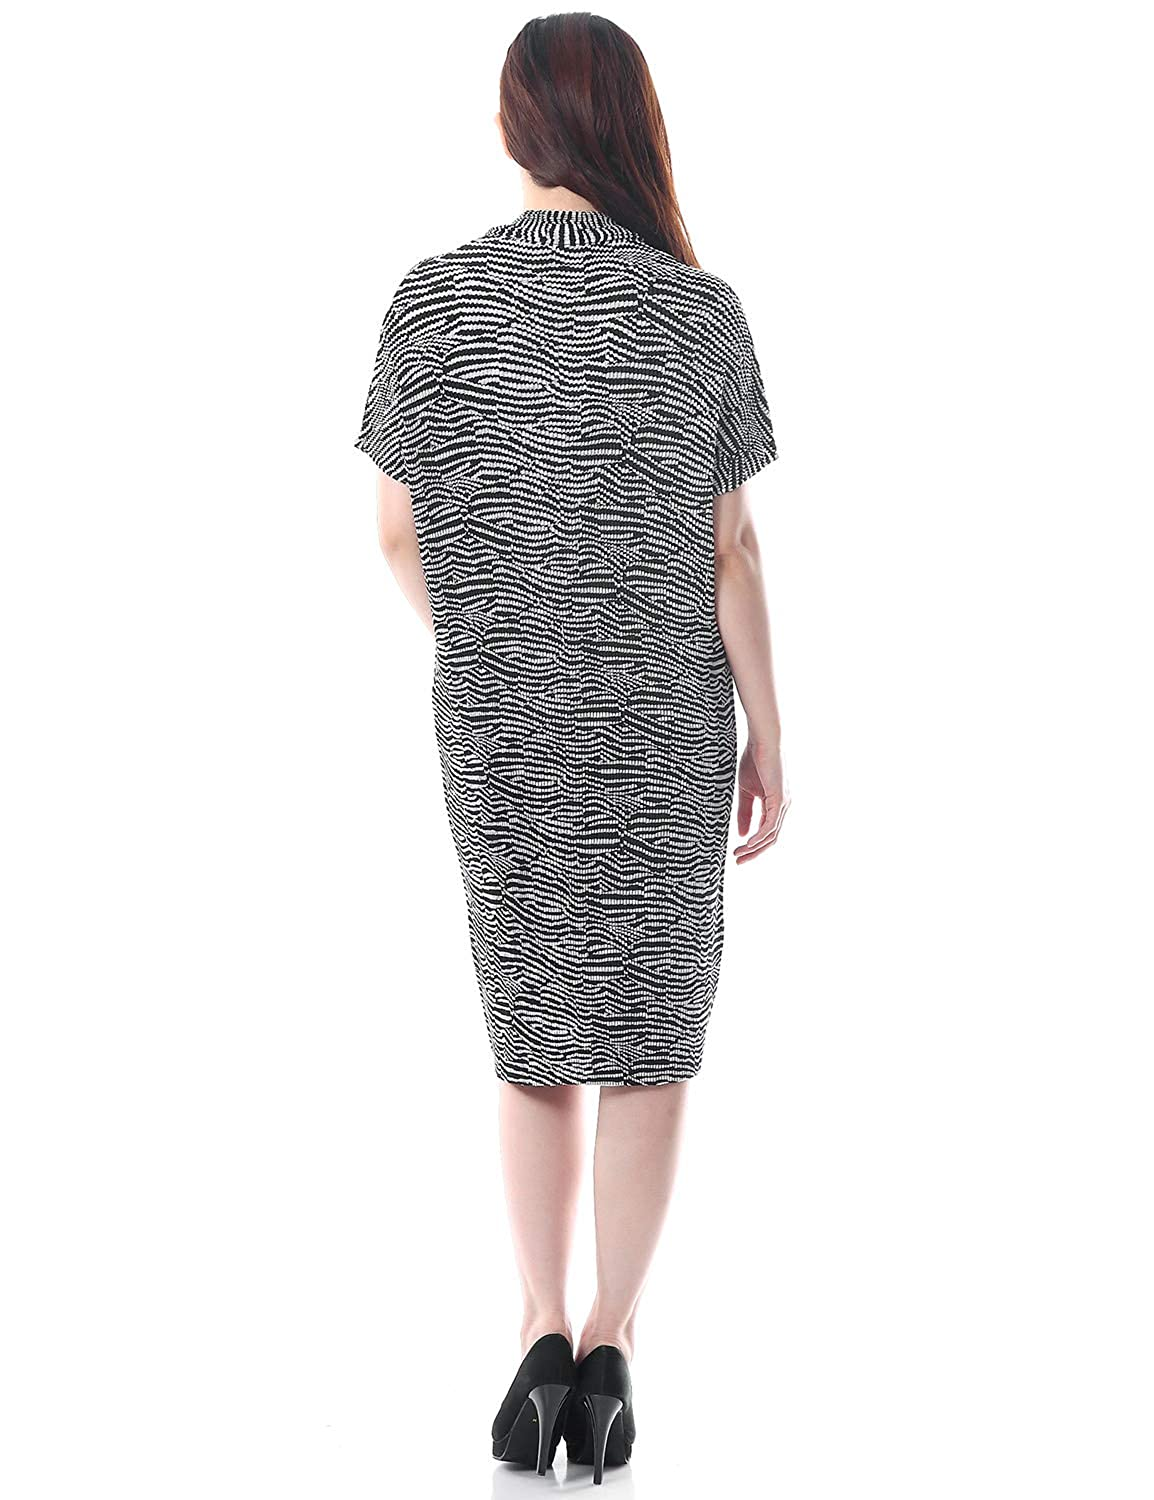 SPECCHIO PLEATS Mono Tone Zebra Print I-line Dress with a ...